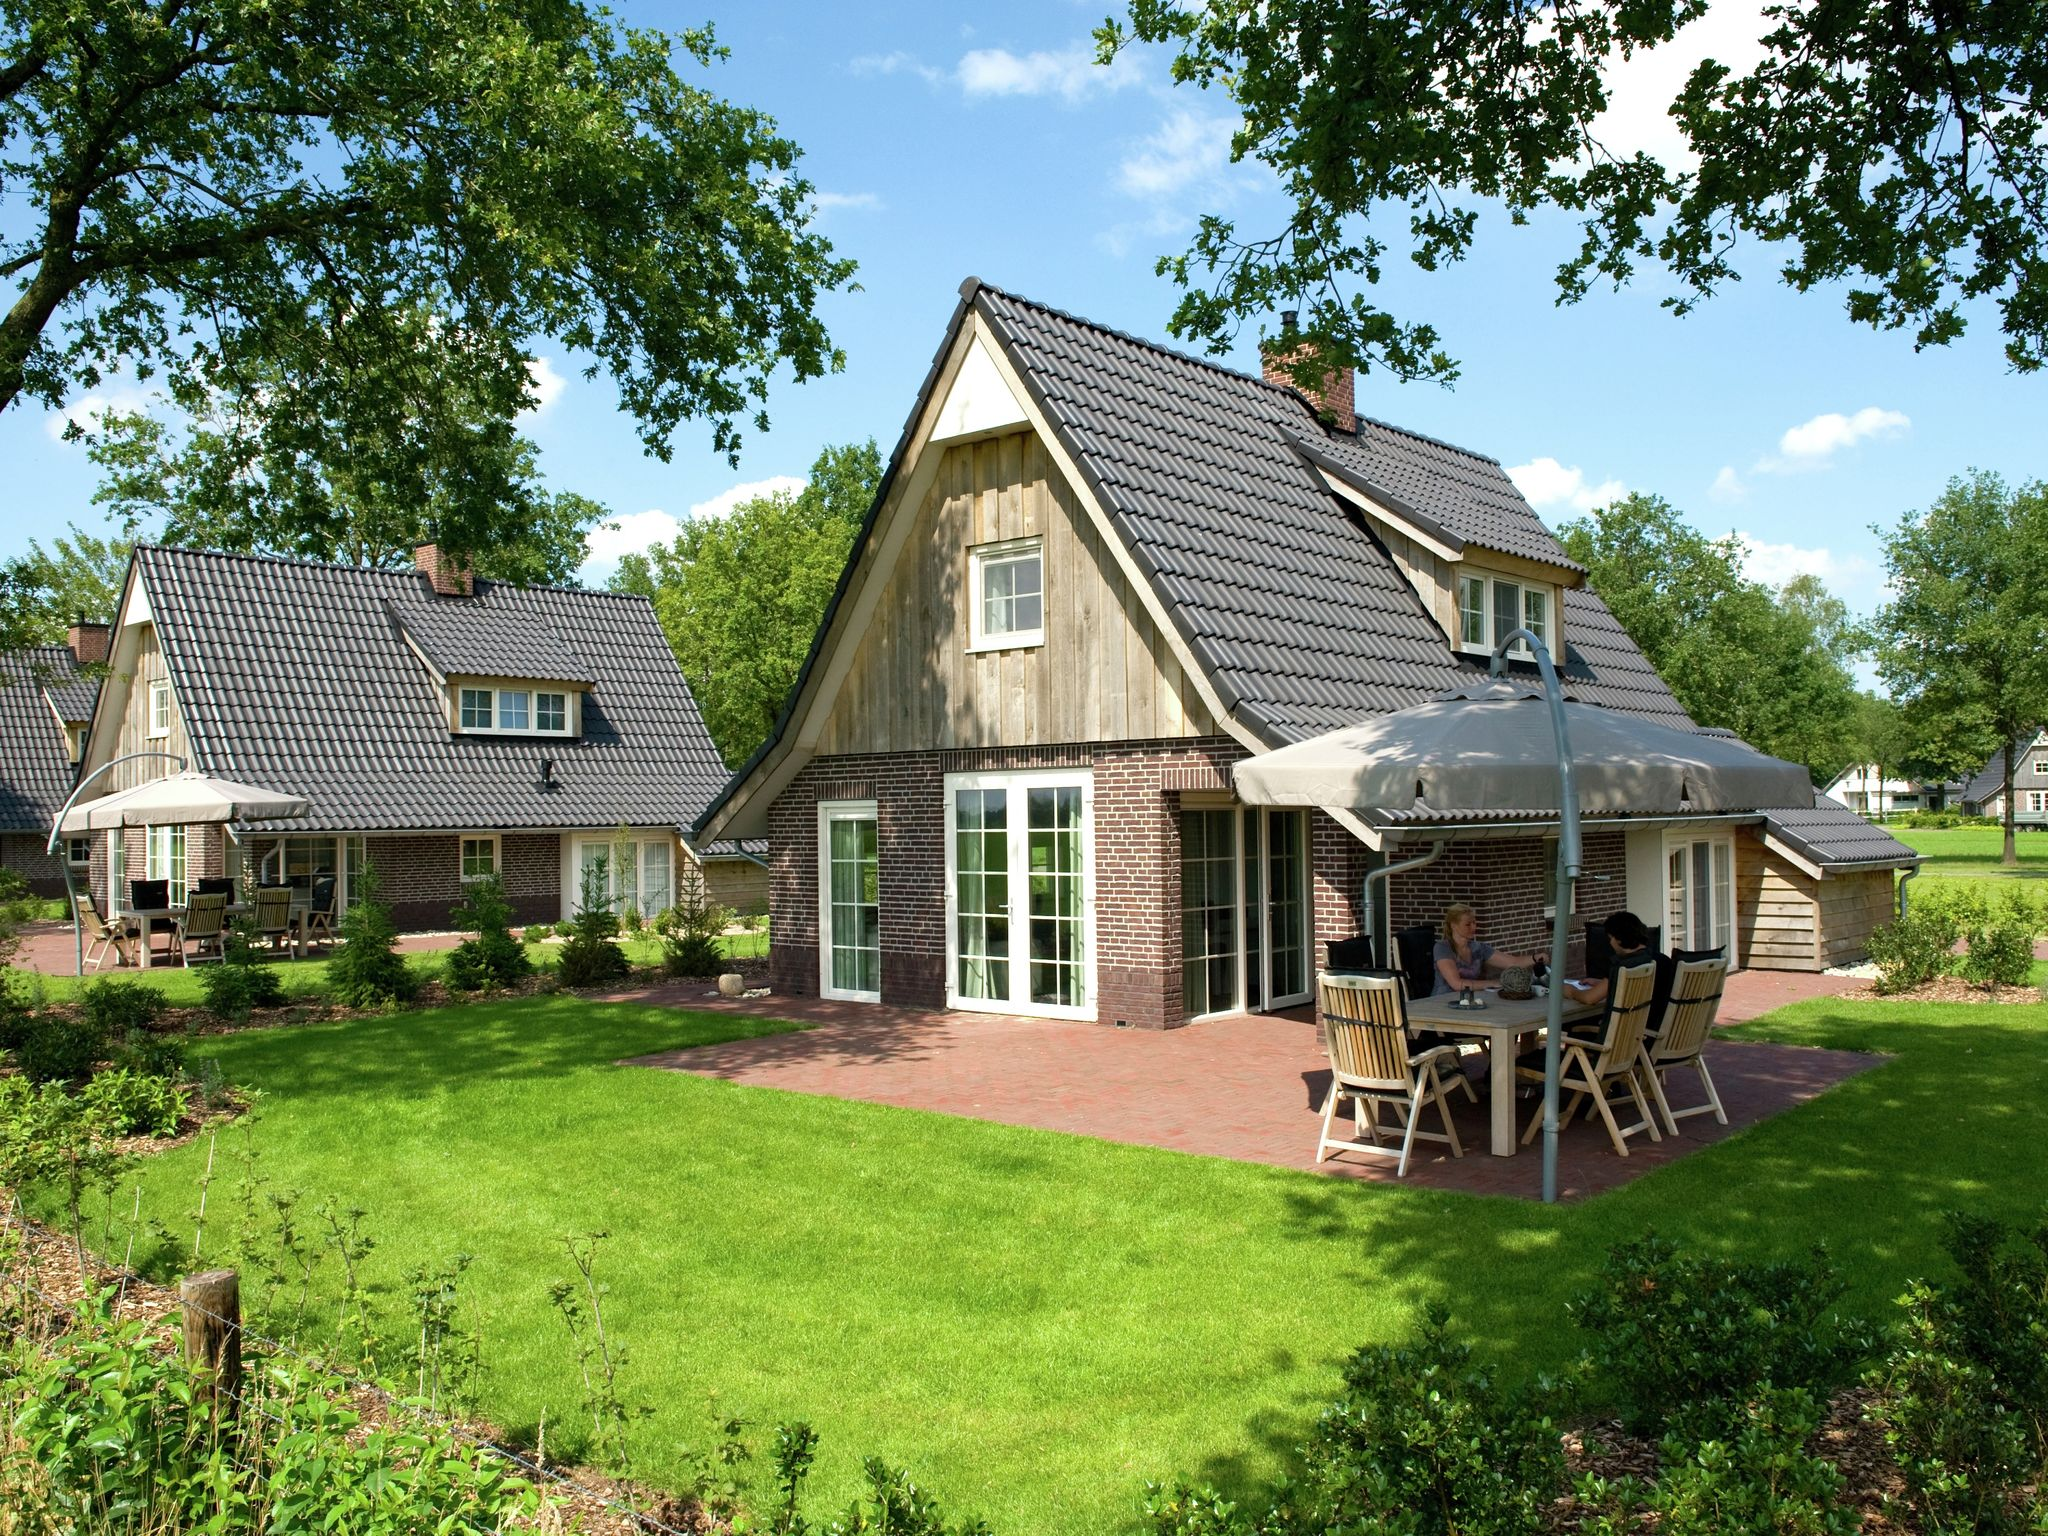 Holland | Overijssel | Holiday home Hof van Salland - Beukelaer XL wellness 6 persoons | all year | ExteriorSummer